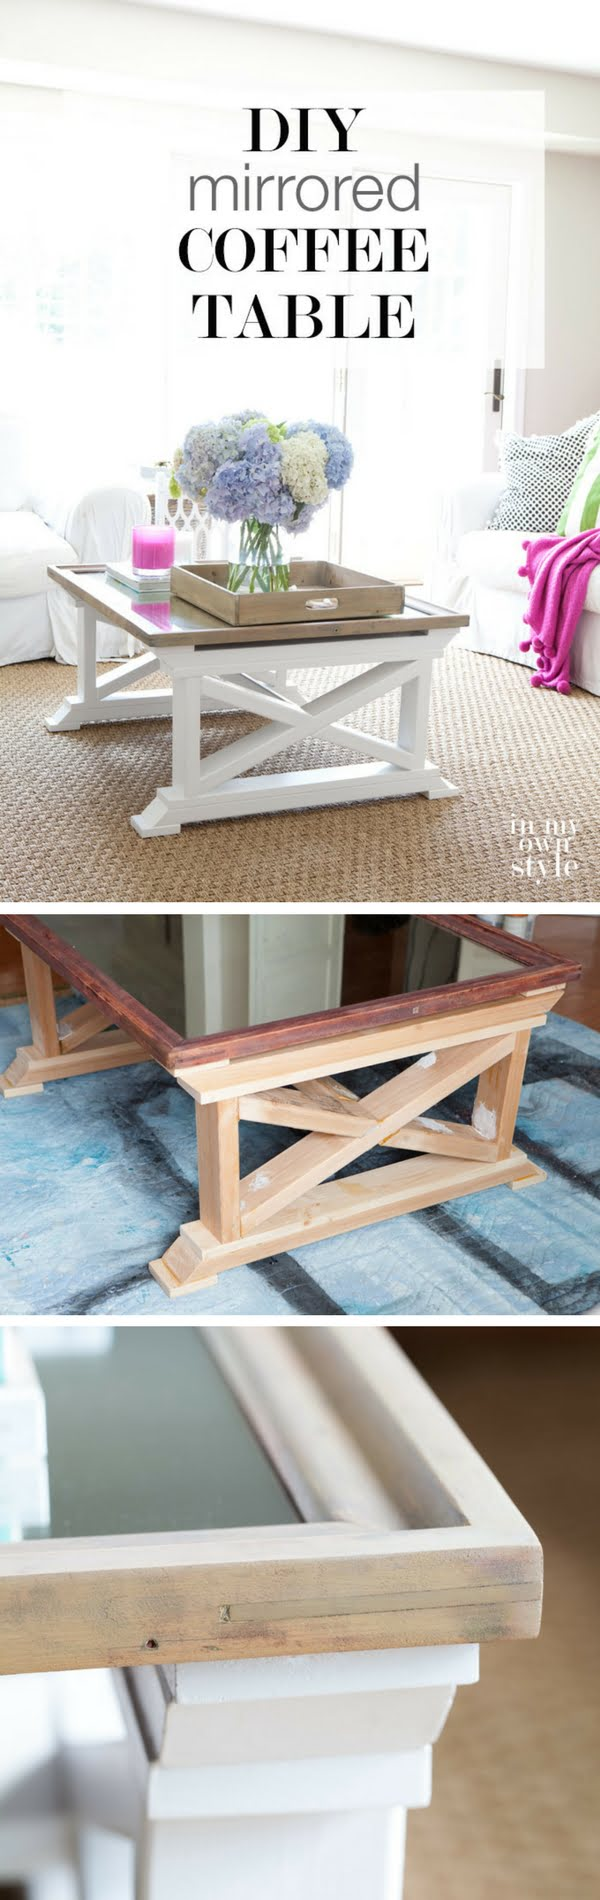 20 Crafty 2x4 DIY Projects That You Can Easily Make - Check out how to make a DIY mirror coffee table from 2x4s